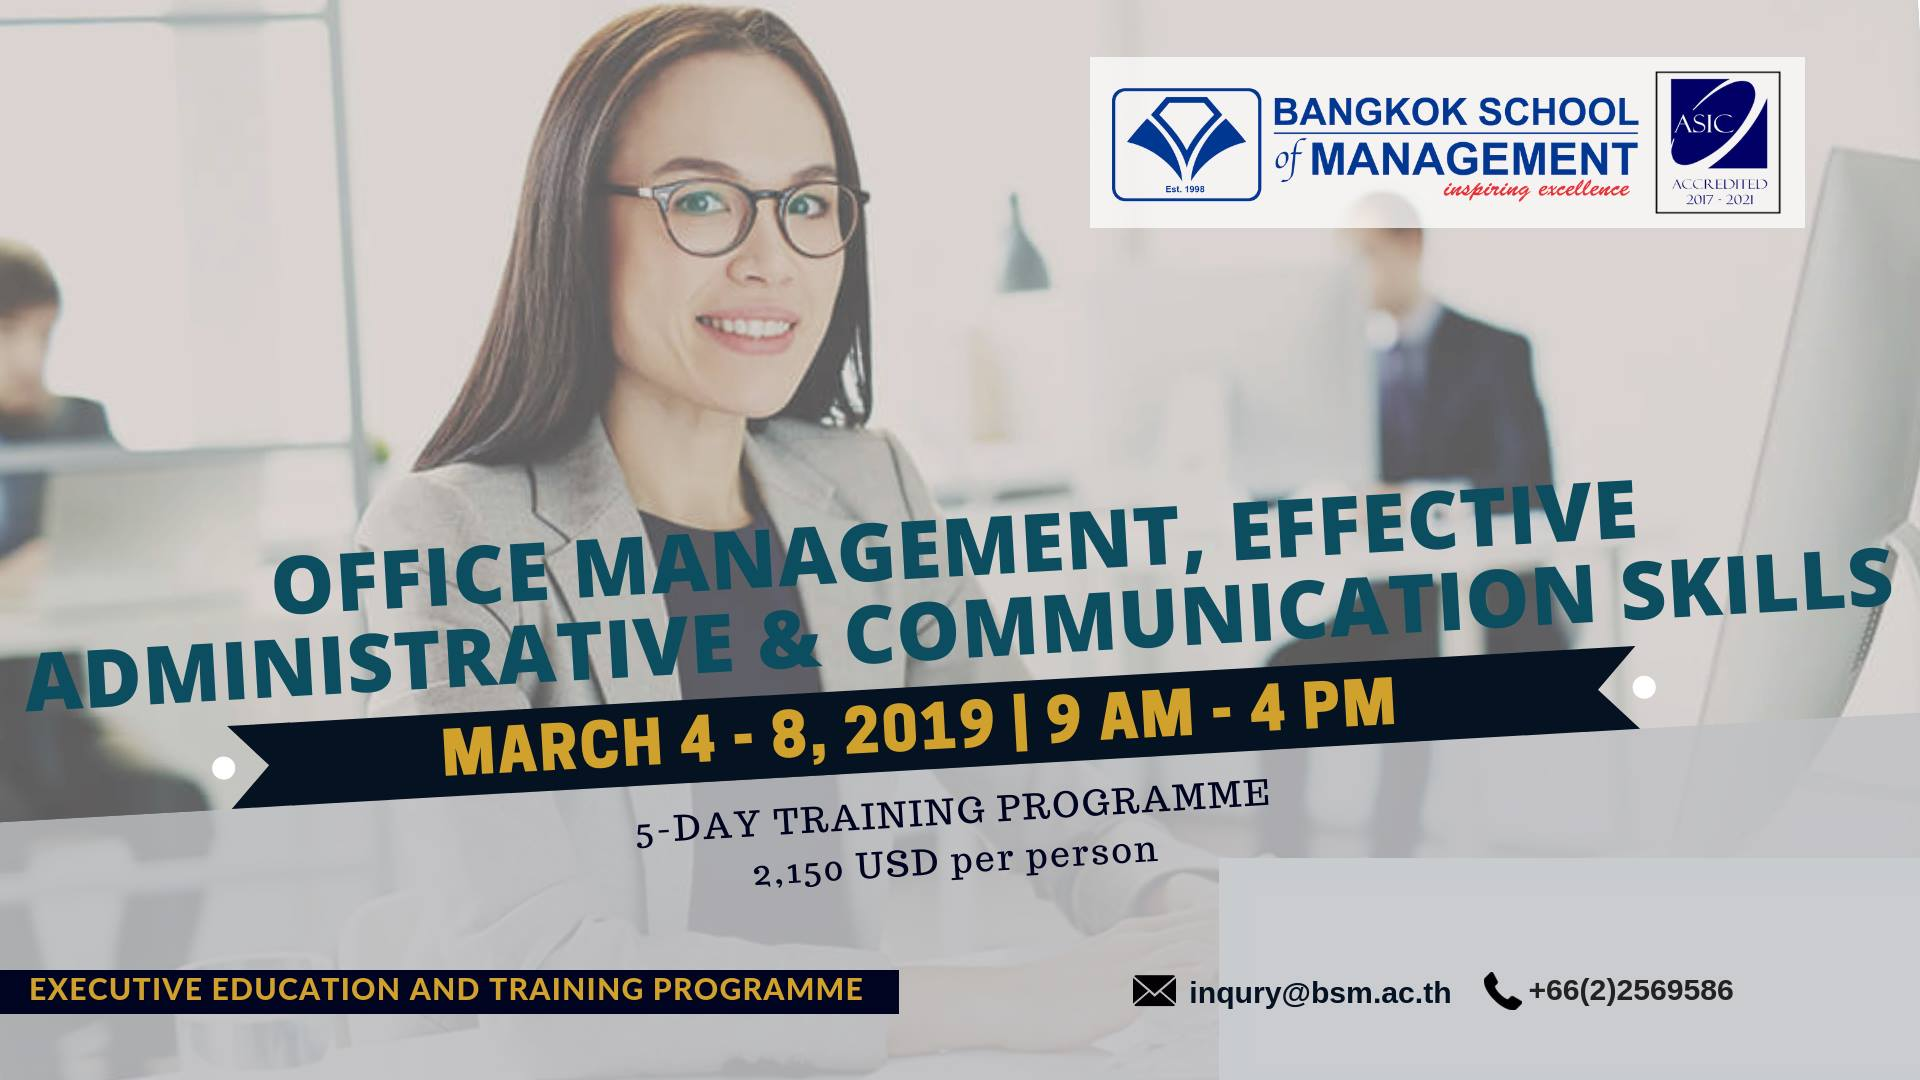 Date: March 4 – 8, 2019  Office Management, Effective Administrative & Communicative Skills